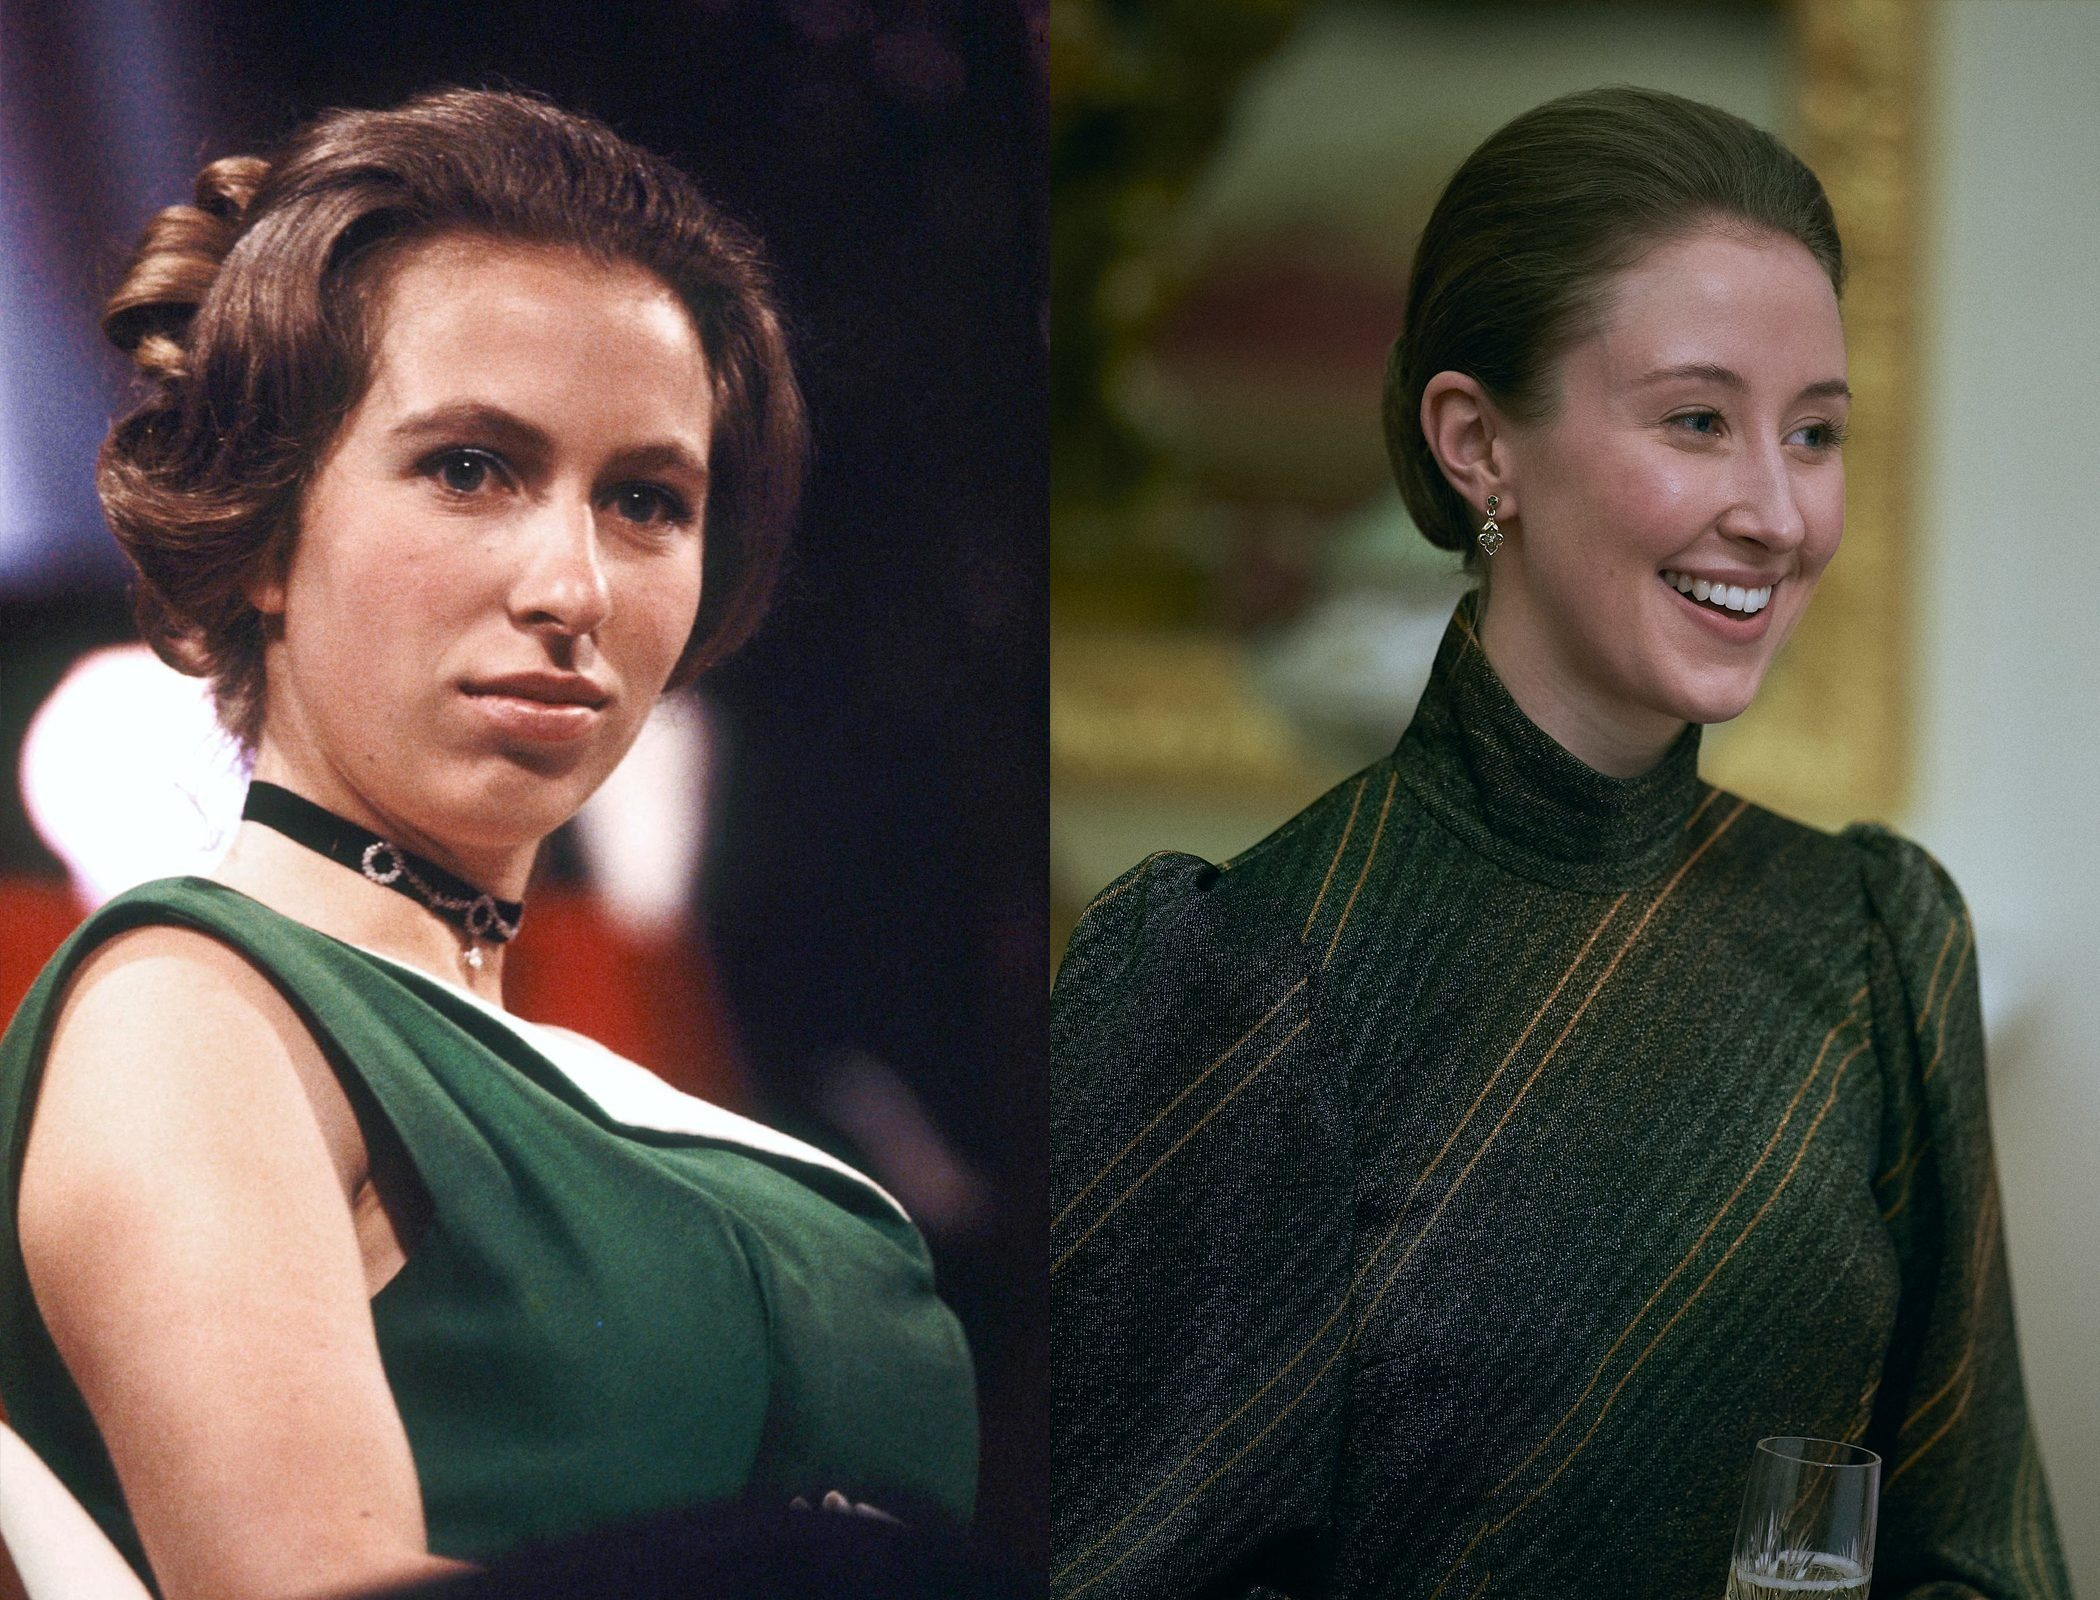 Princess Anne, as played by Erin Doherty